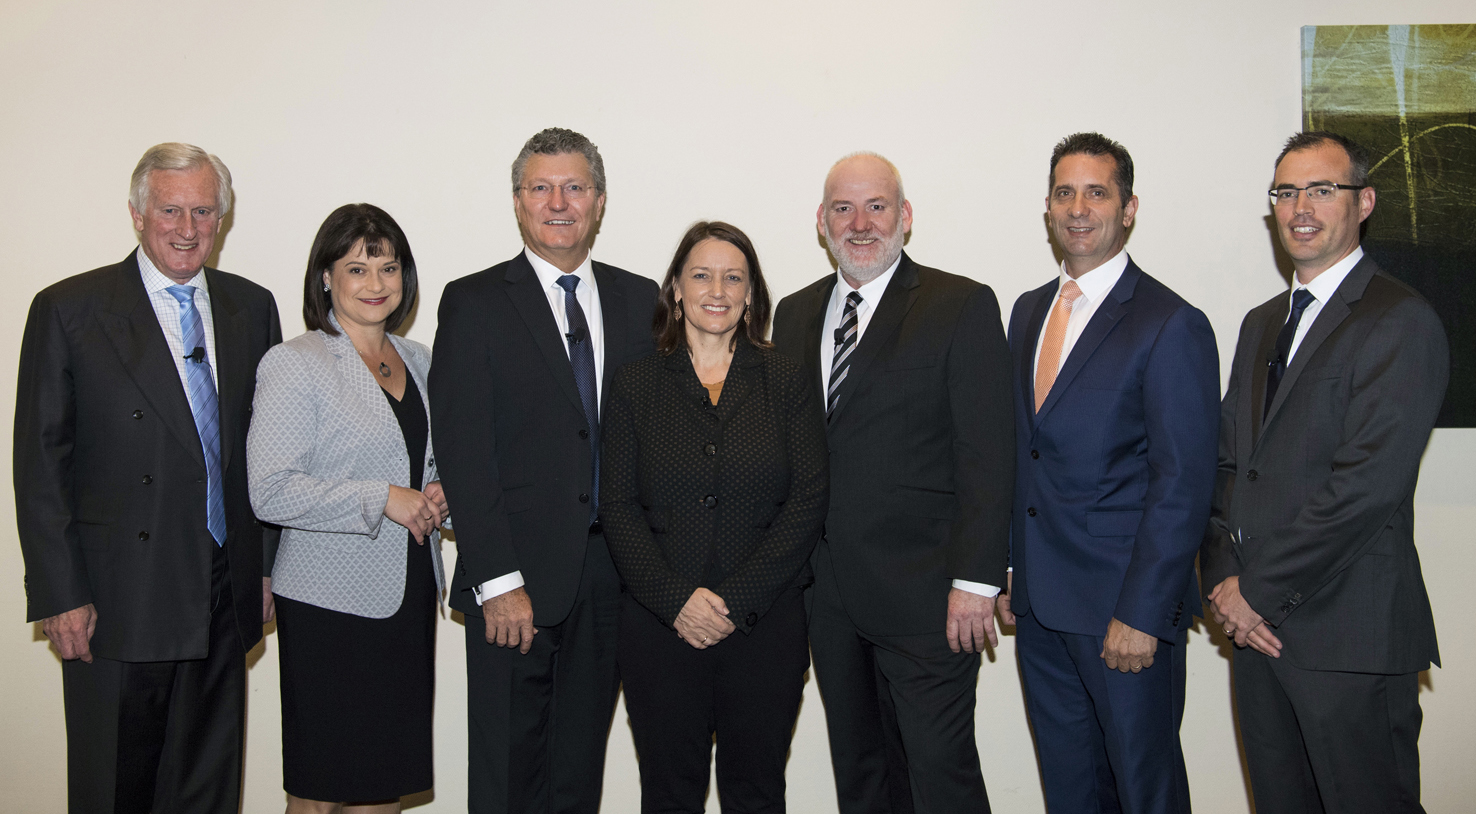 Photo of the panel at the small business report launch